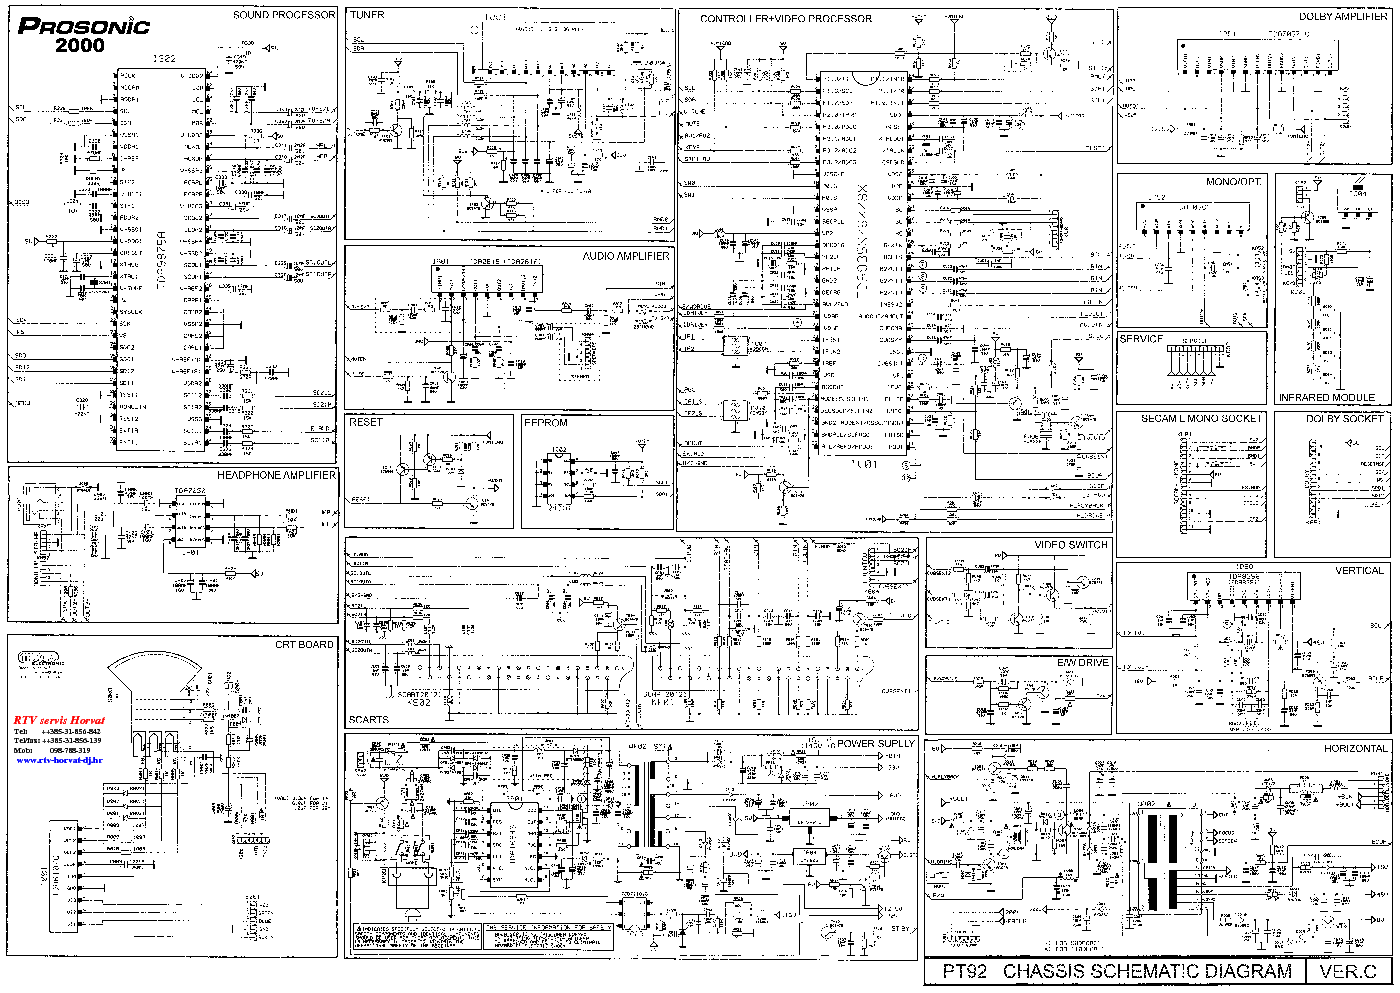 hight resolution of free download this picture is a preview of tvmitsai 7003 schematic wiring diagram filter